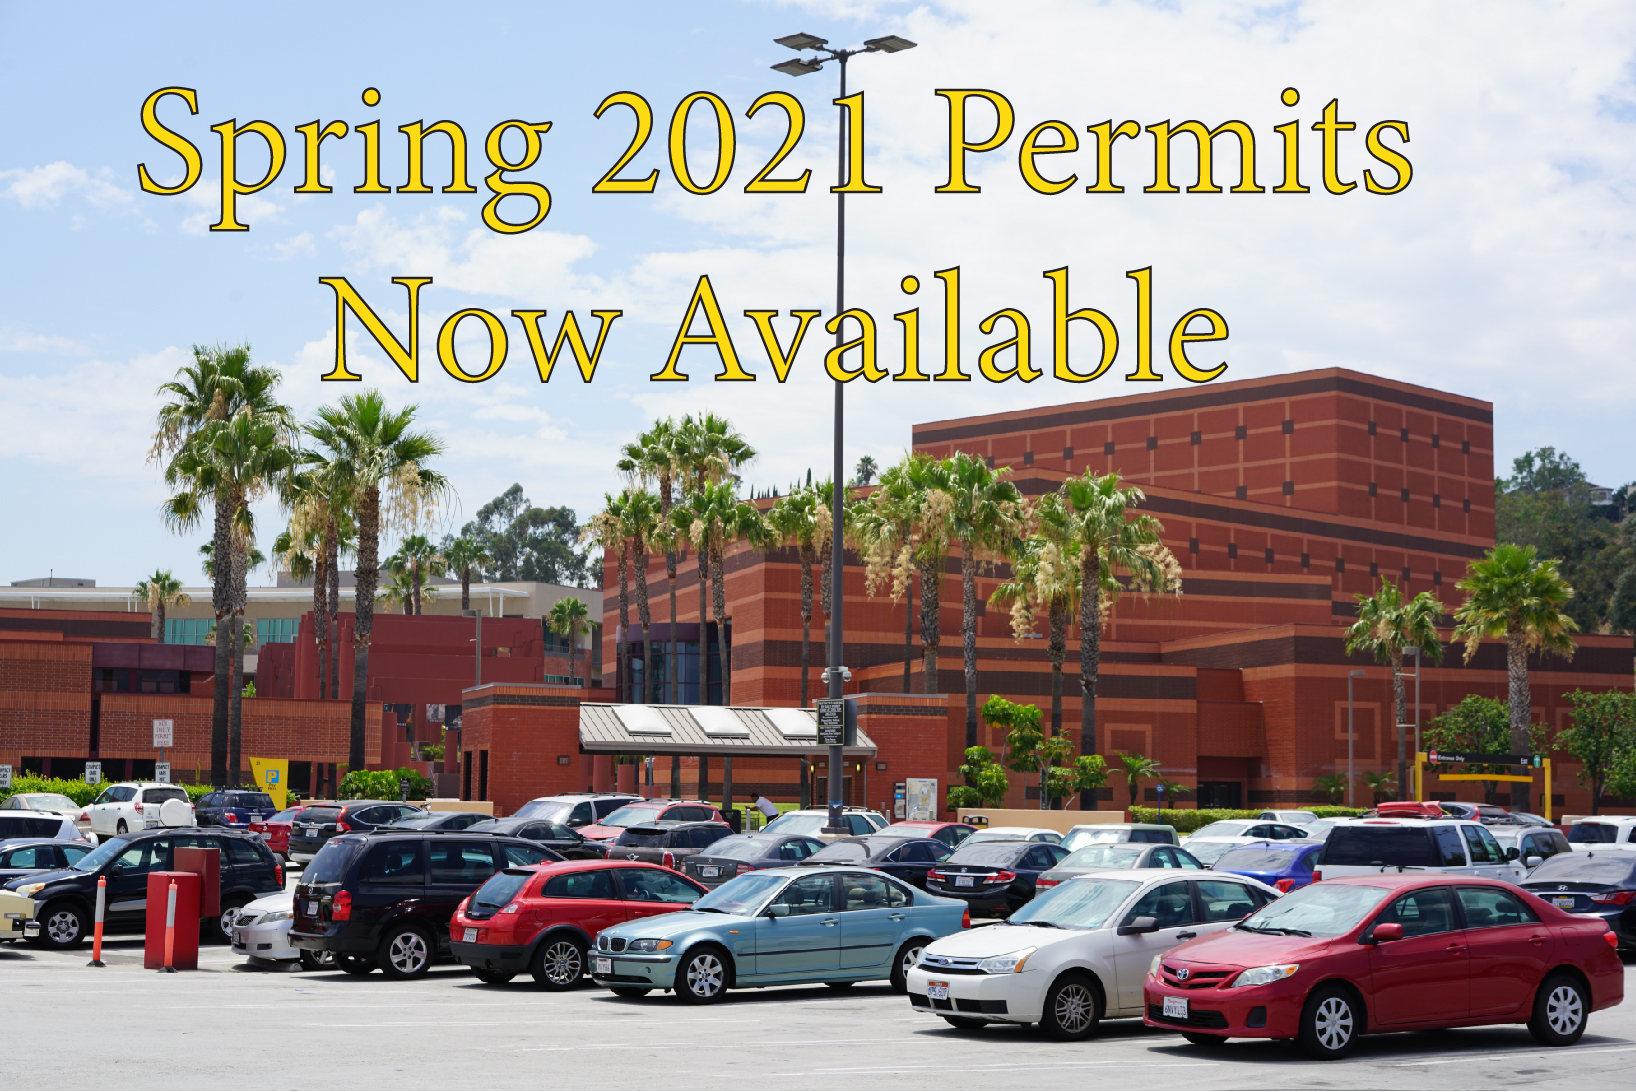 Spring 2021 Permits Available